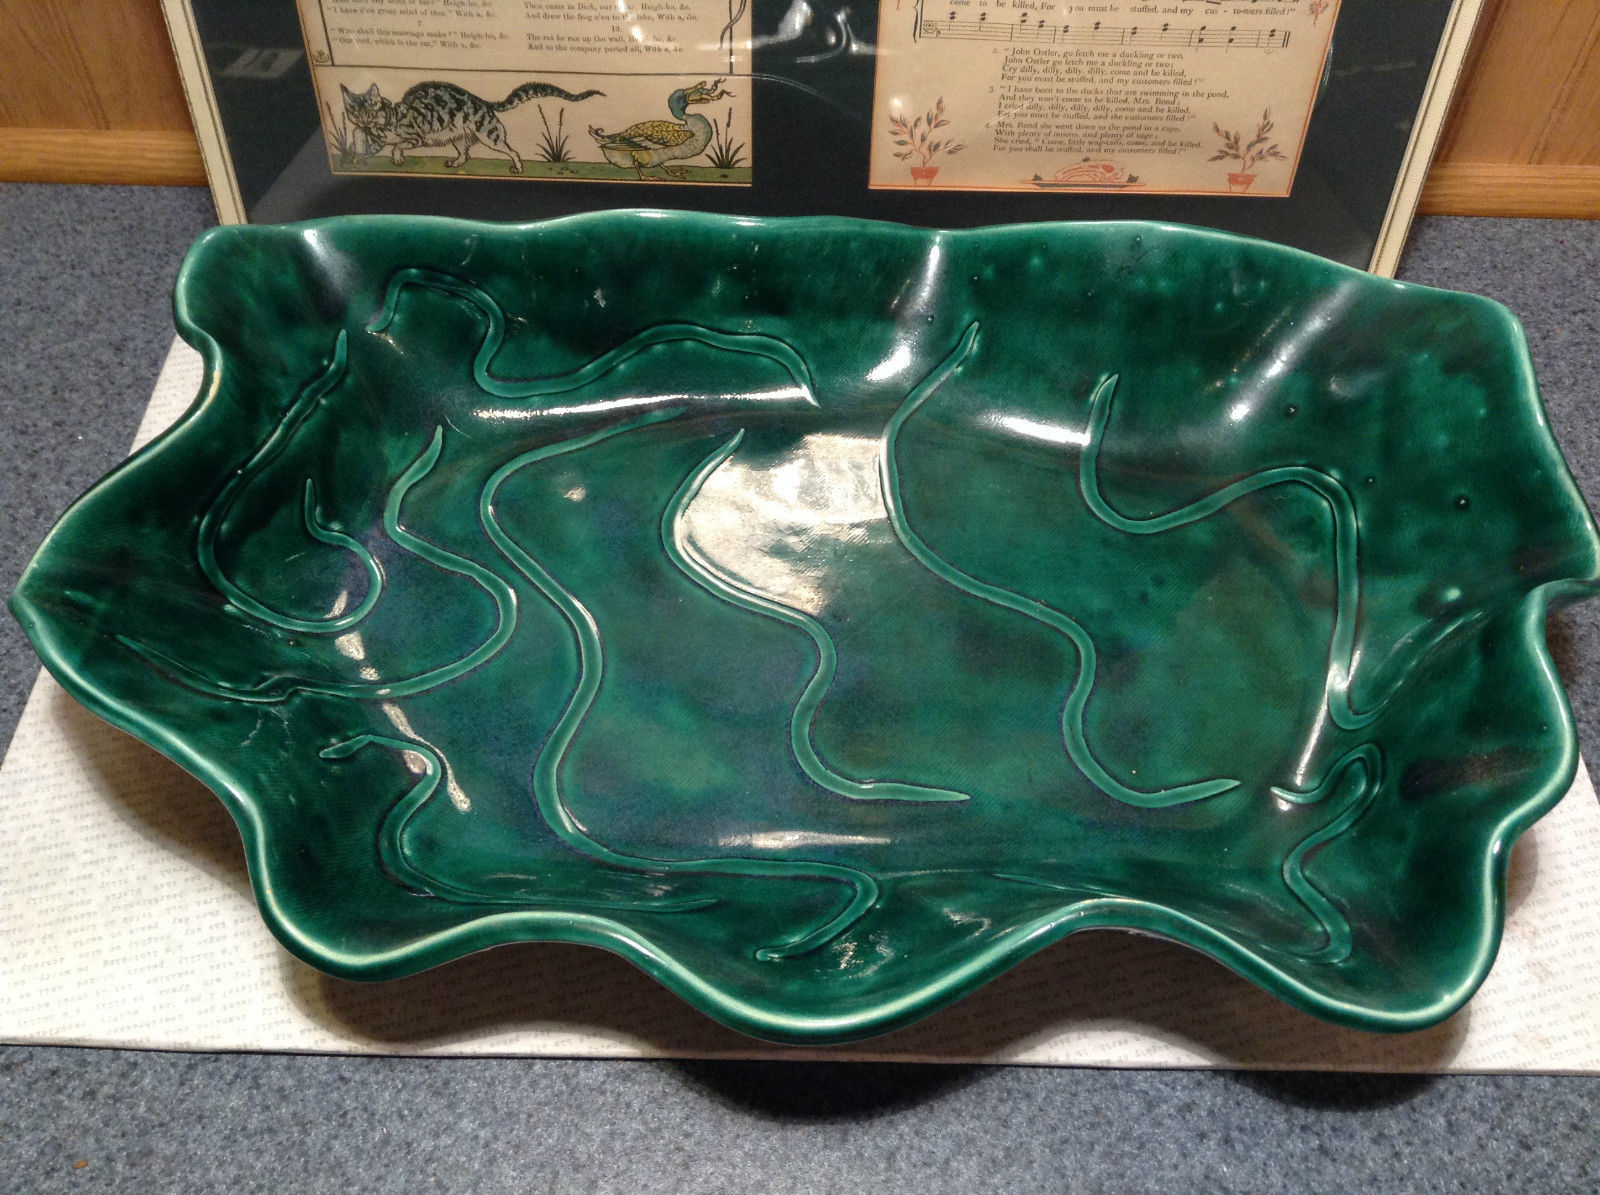 Green Decorative Handmade Large Serving Tray Wavy Edge Squiggly Designs